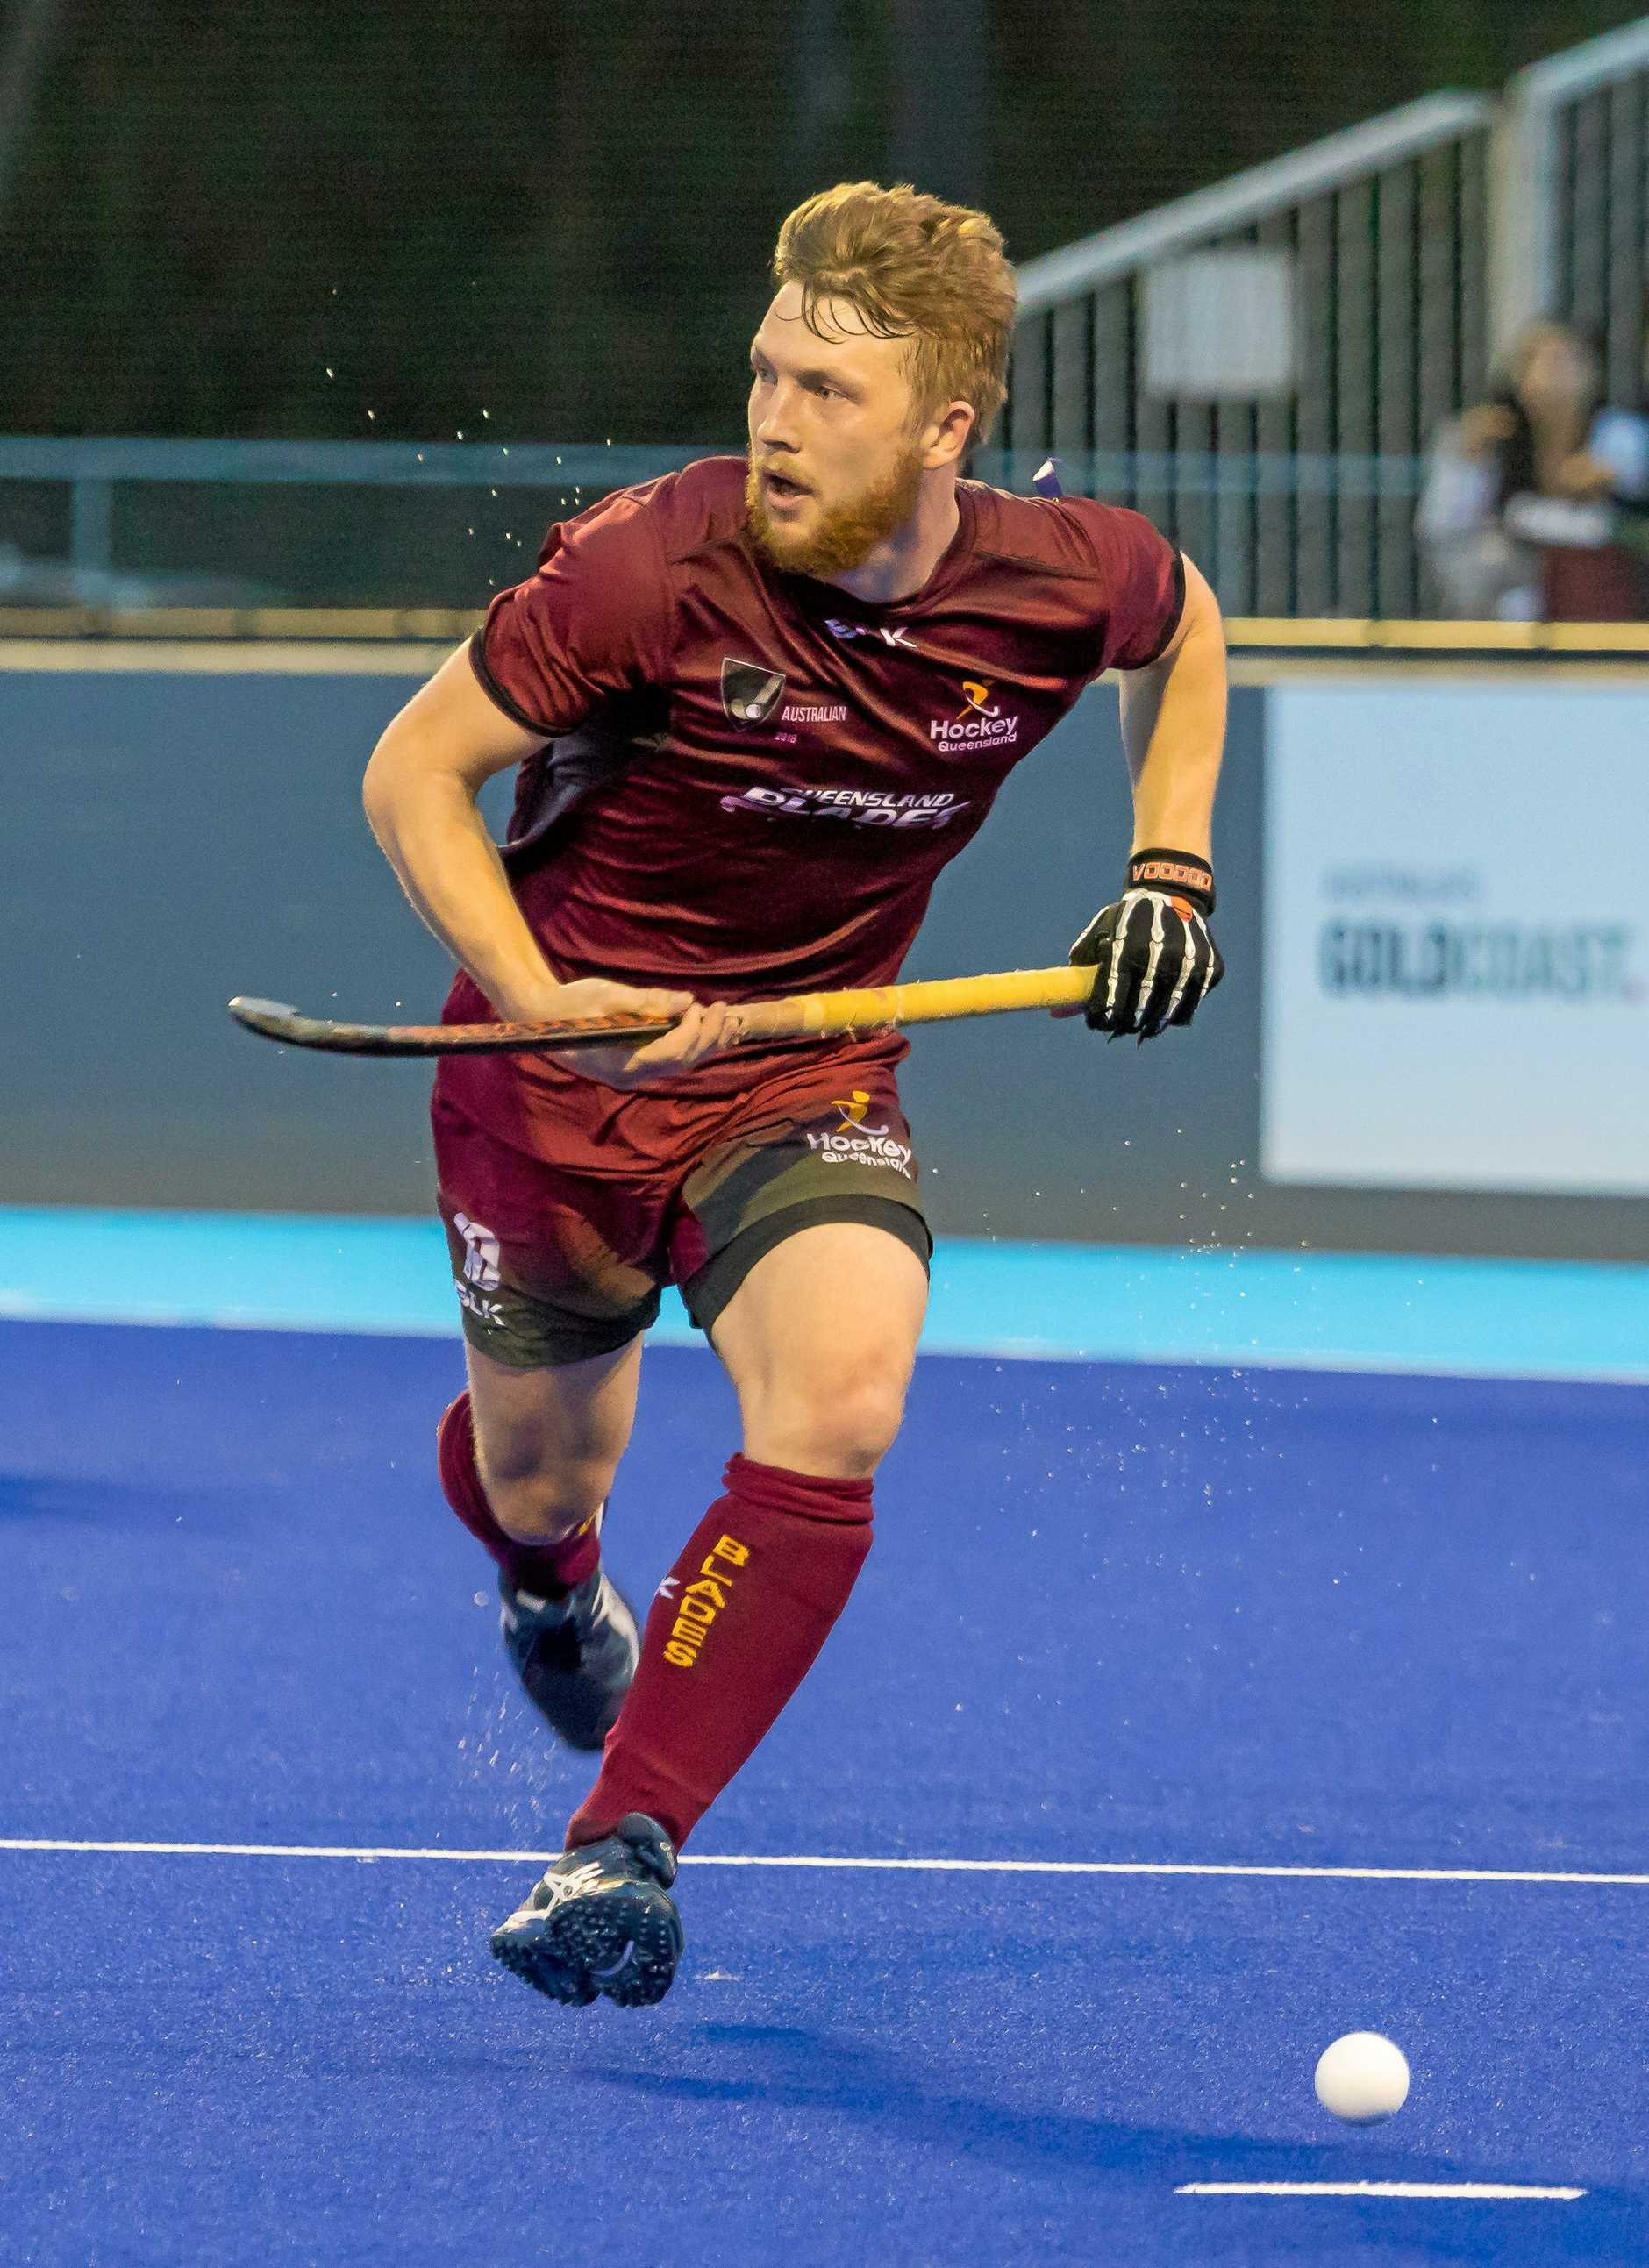 Robert Bell has won several Australian Hockey League titles with the Queensland Blades.